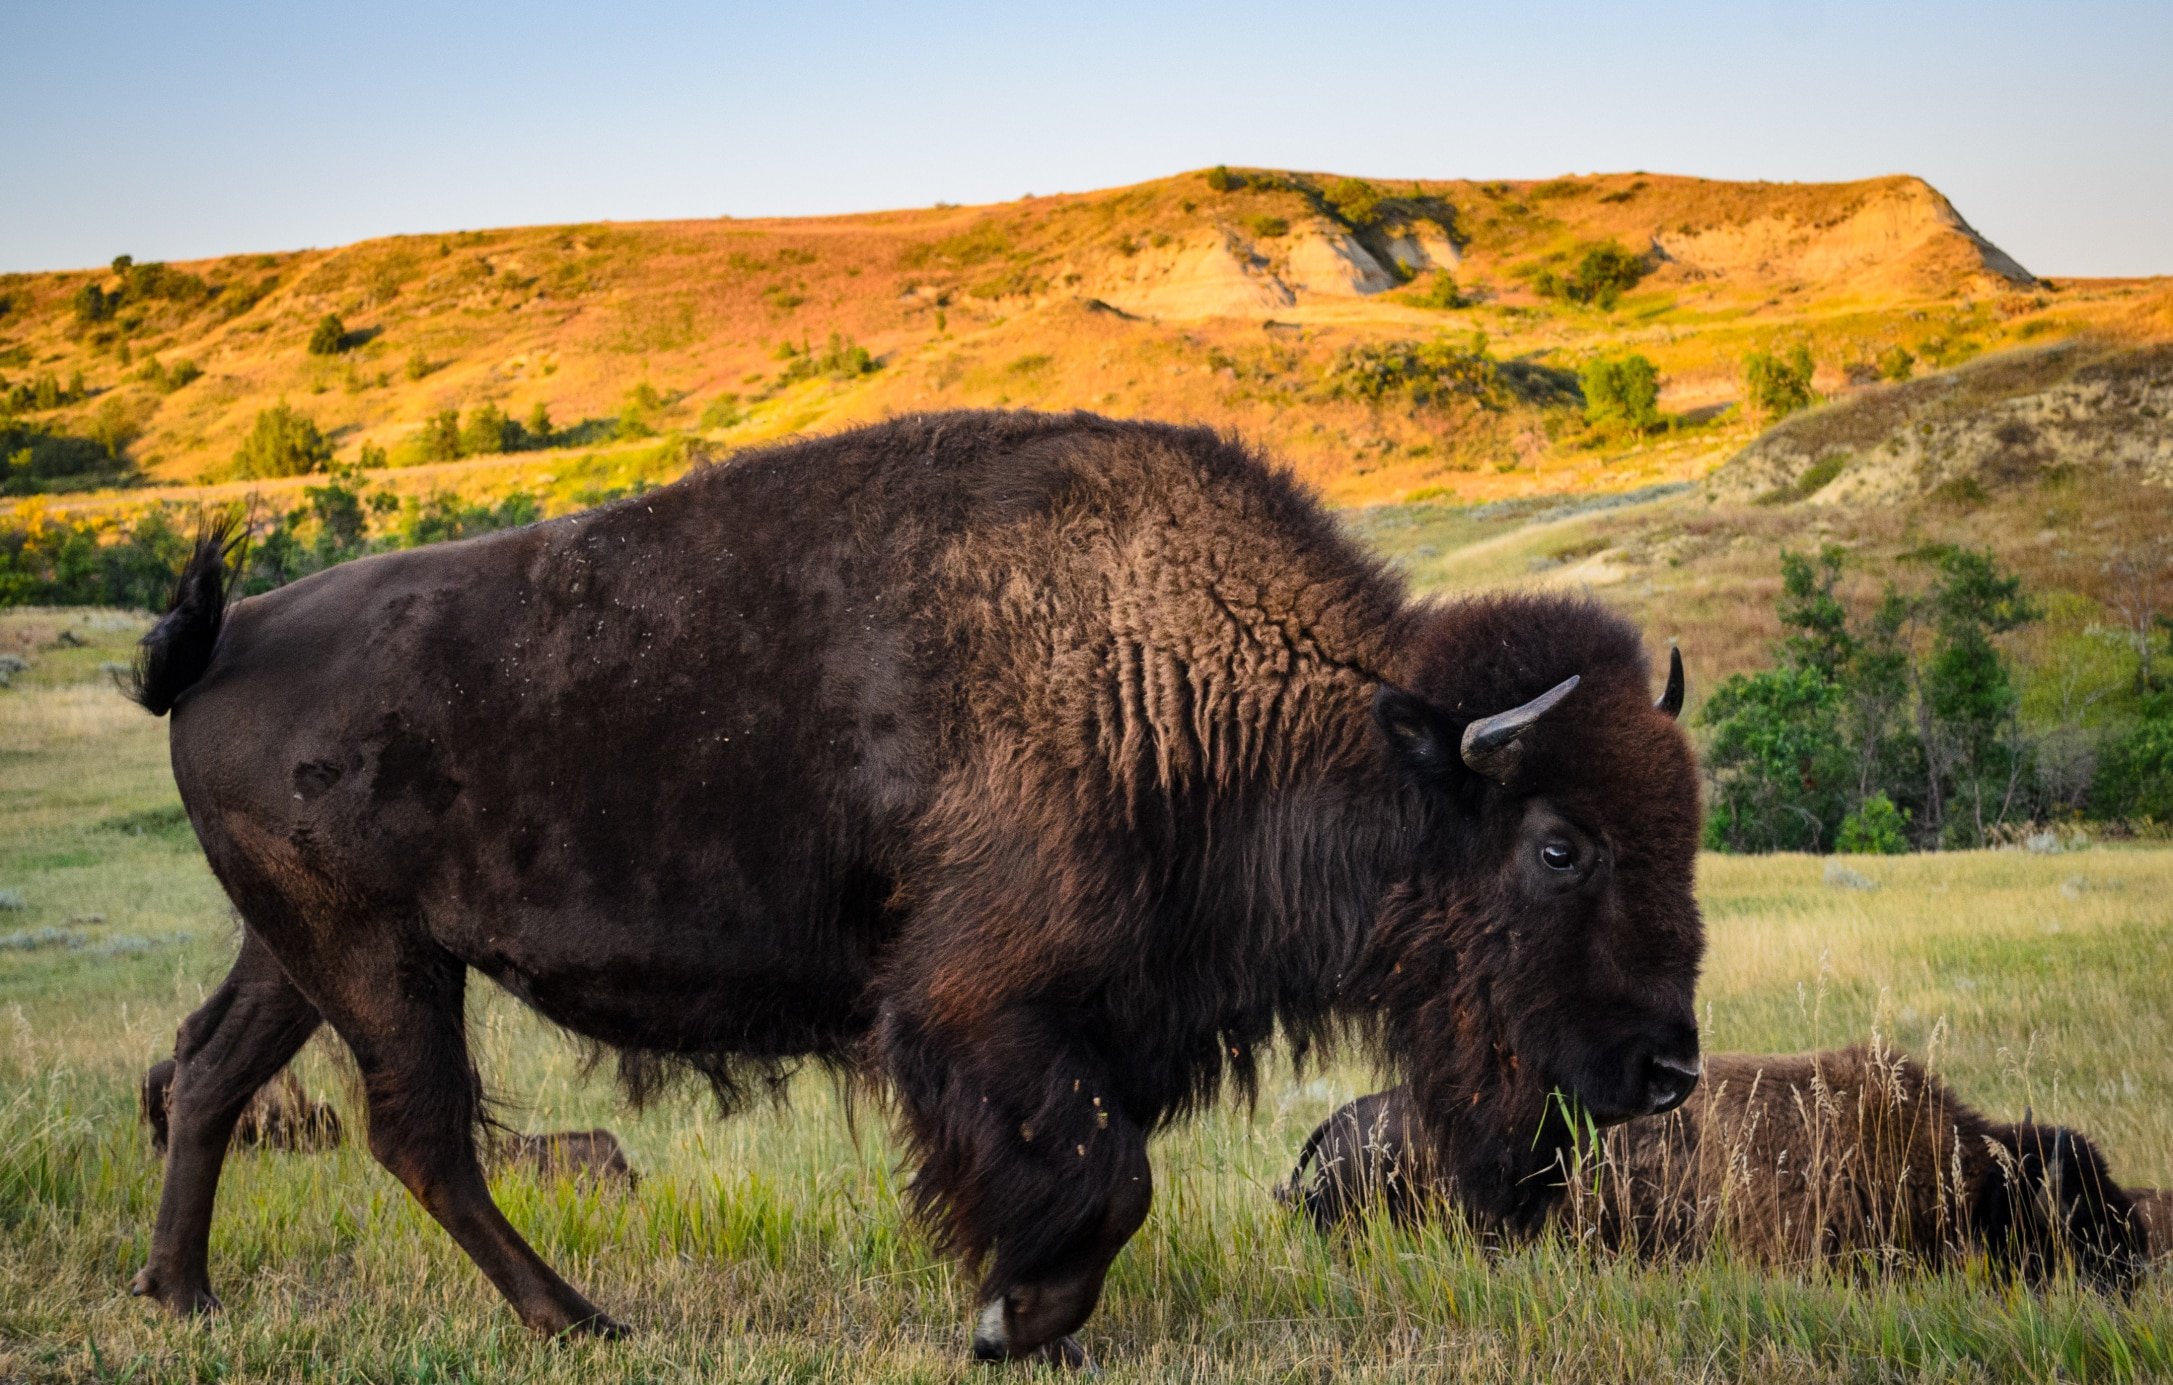 Buffalo on prairie (Thinkstock)